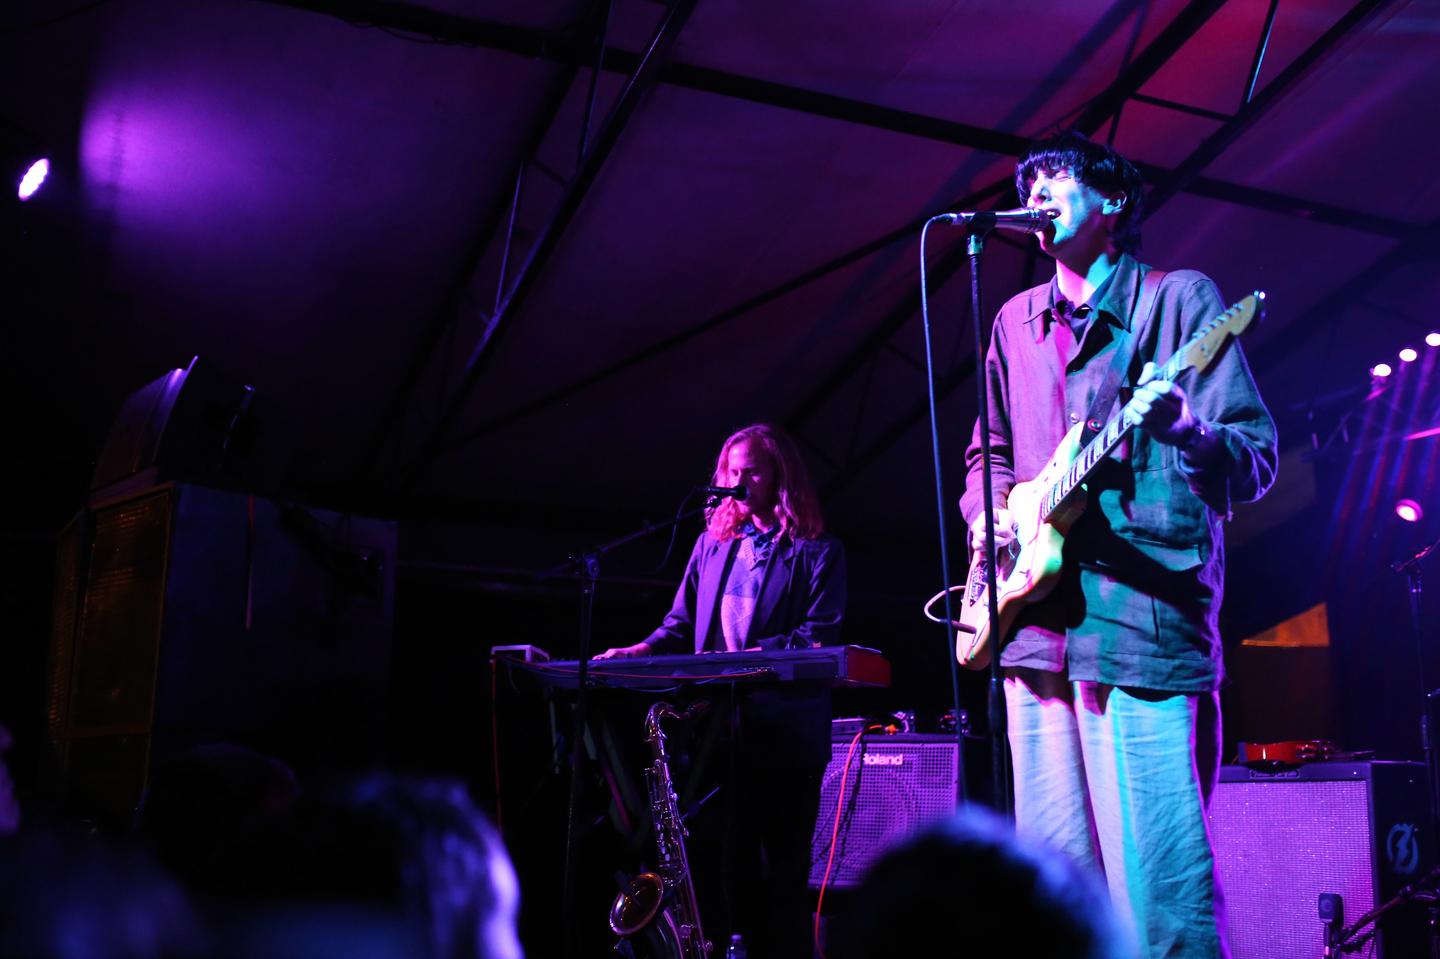 (L-R) Javier Morales and Bradford Cox of Deerhunter perform onstage at The Onion AV Club event at the Mohawk Outdoor.